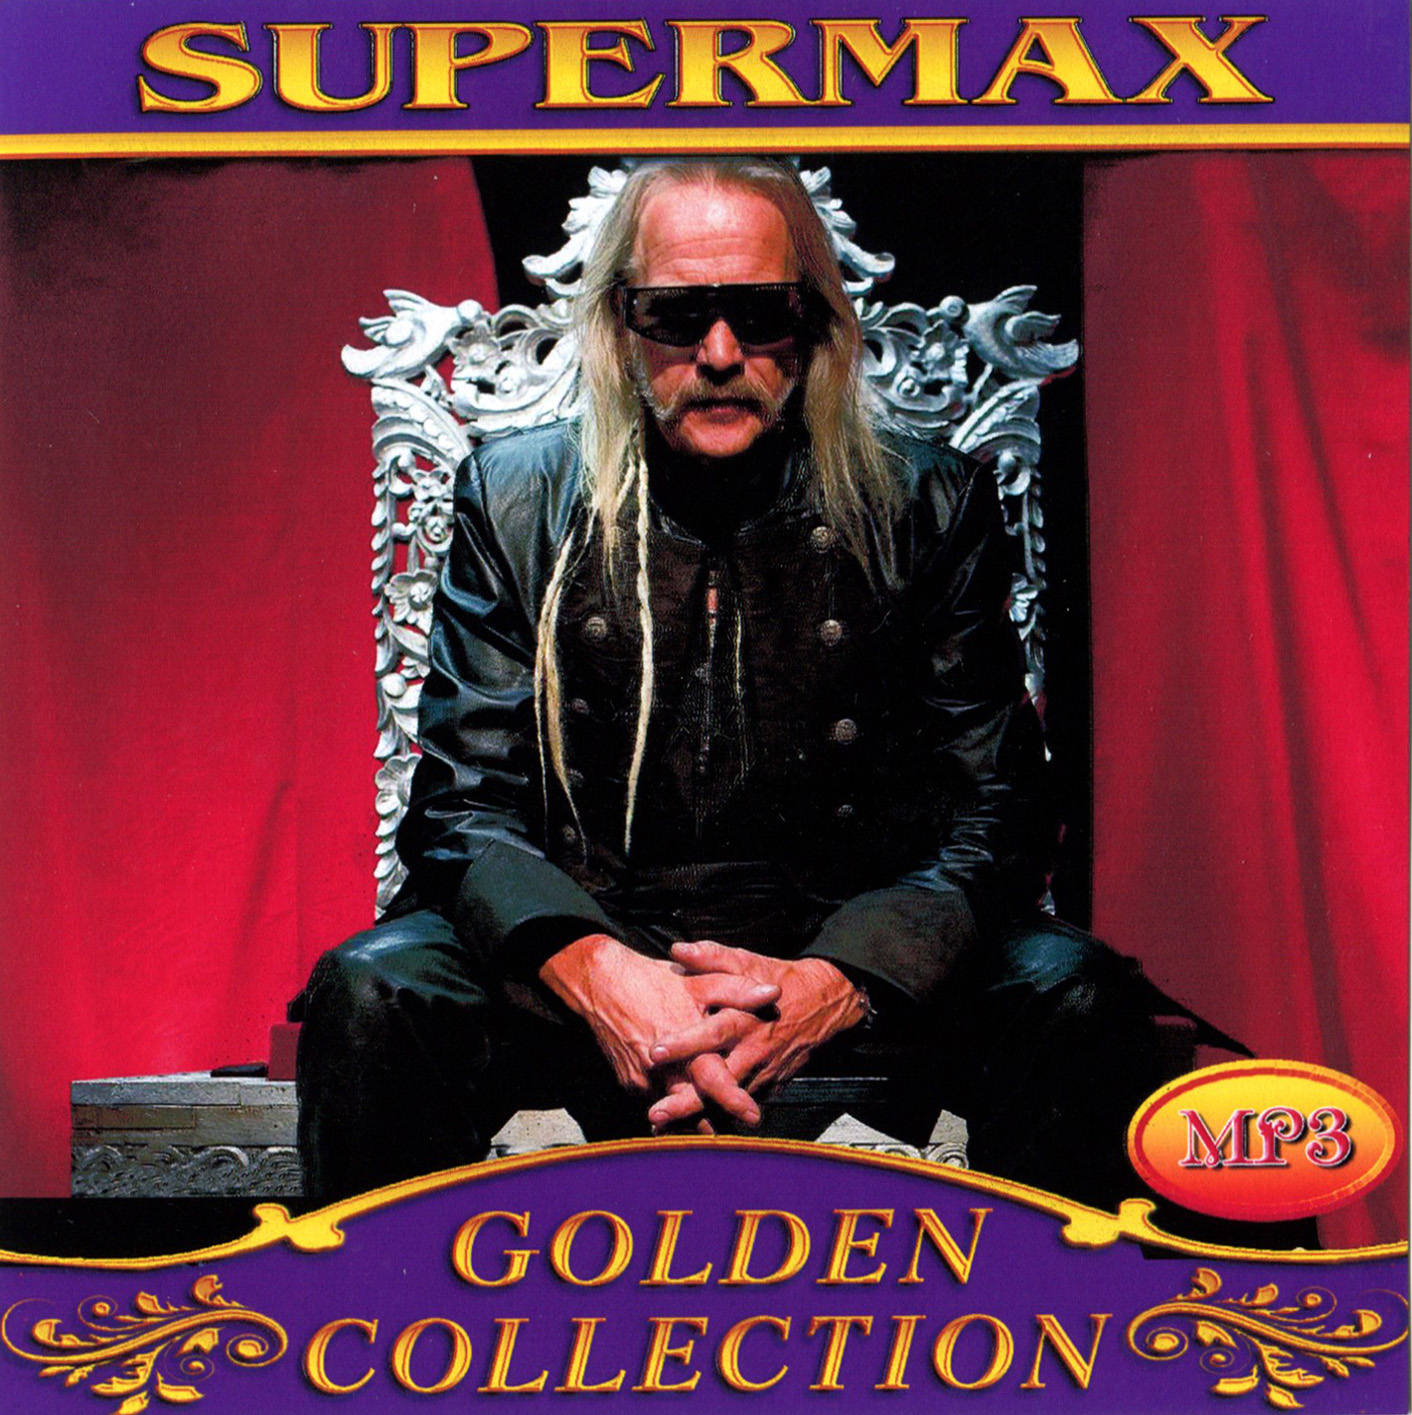 Supermax [mp3]